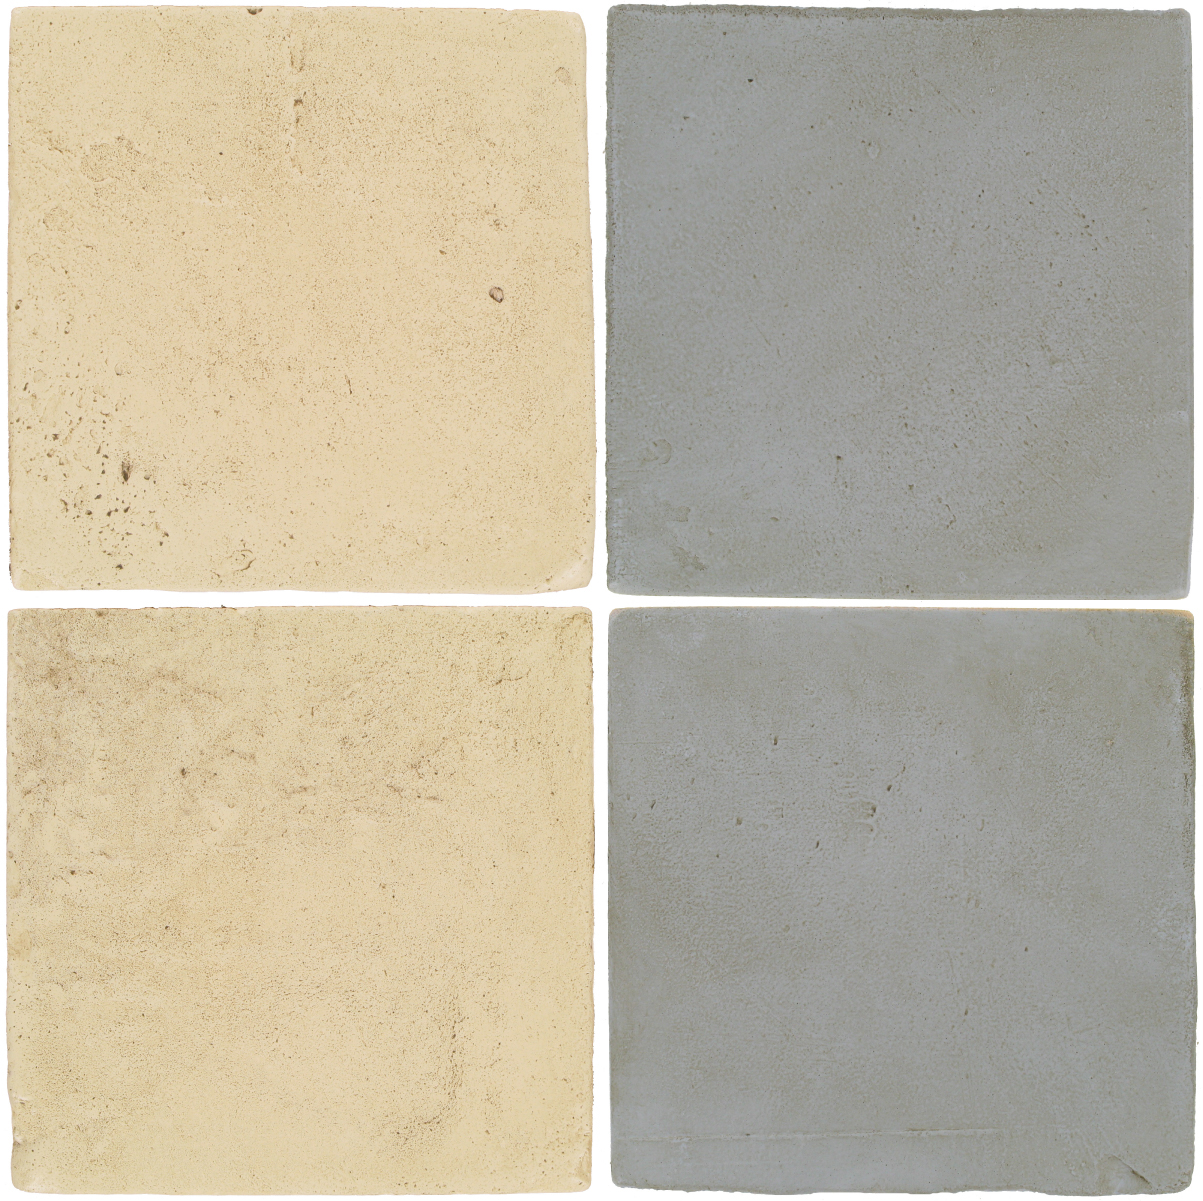 Pedralbes Antique Terracotta  2 Color Combinations  VTG-PGPW Pergamino White + OHS-PGOG Oyster Grey